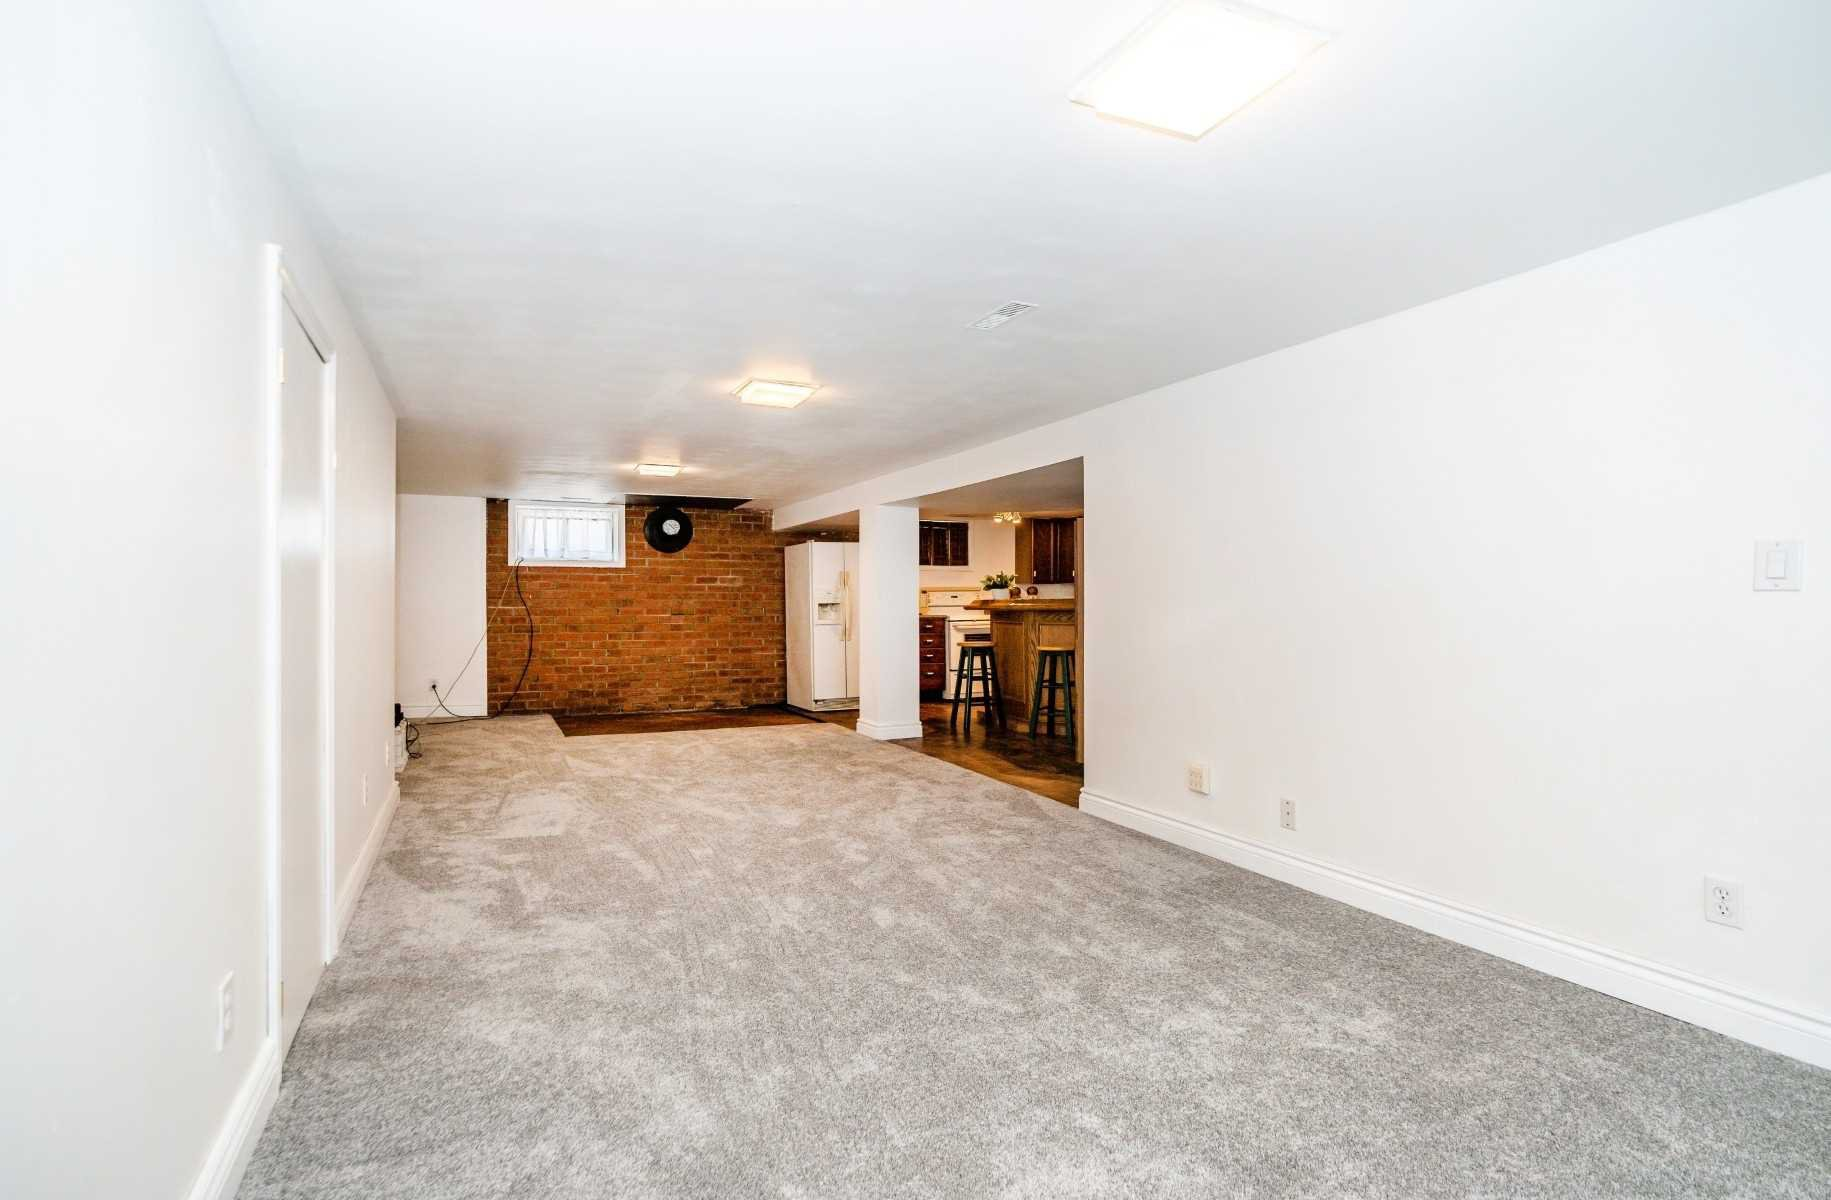 Photo 27: Photos: 40 Eastlawn Street in Oshawa: Donevan House (Bungalow) for sale : MLS®# E4769026